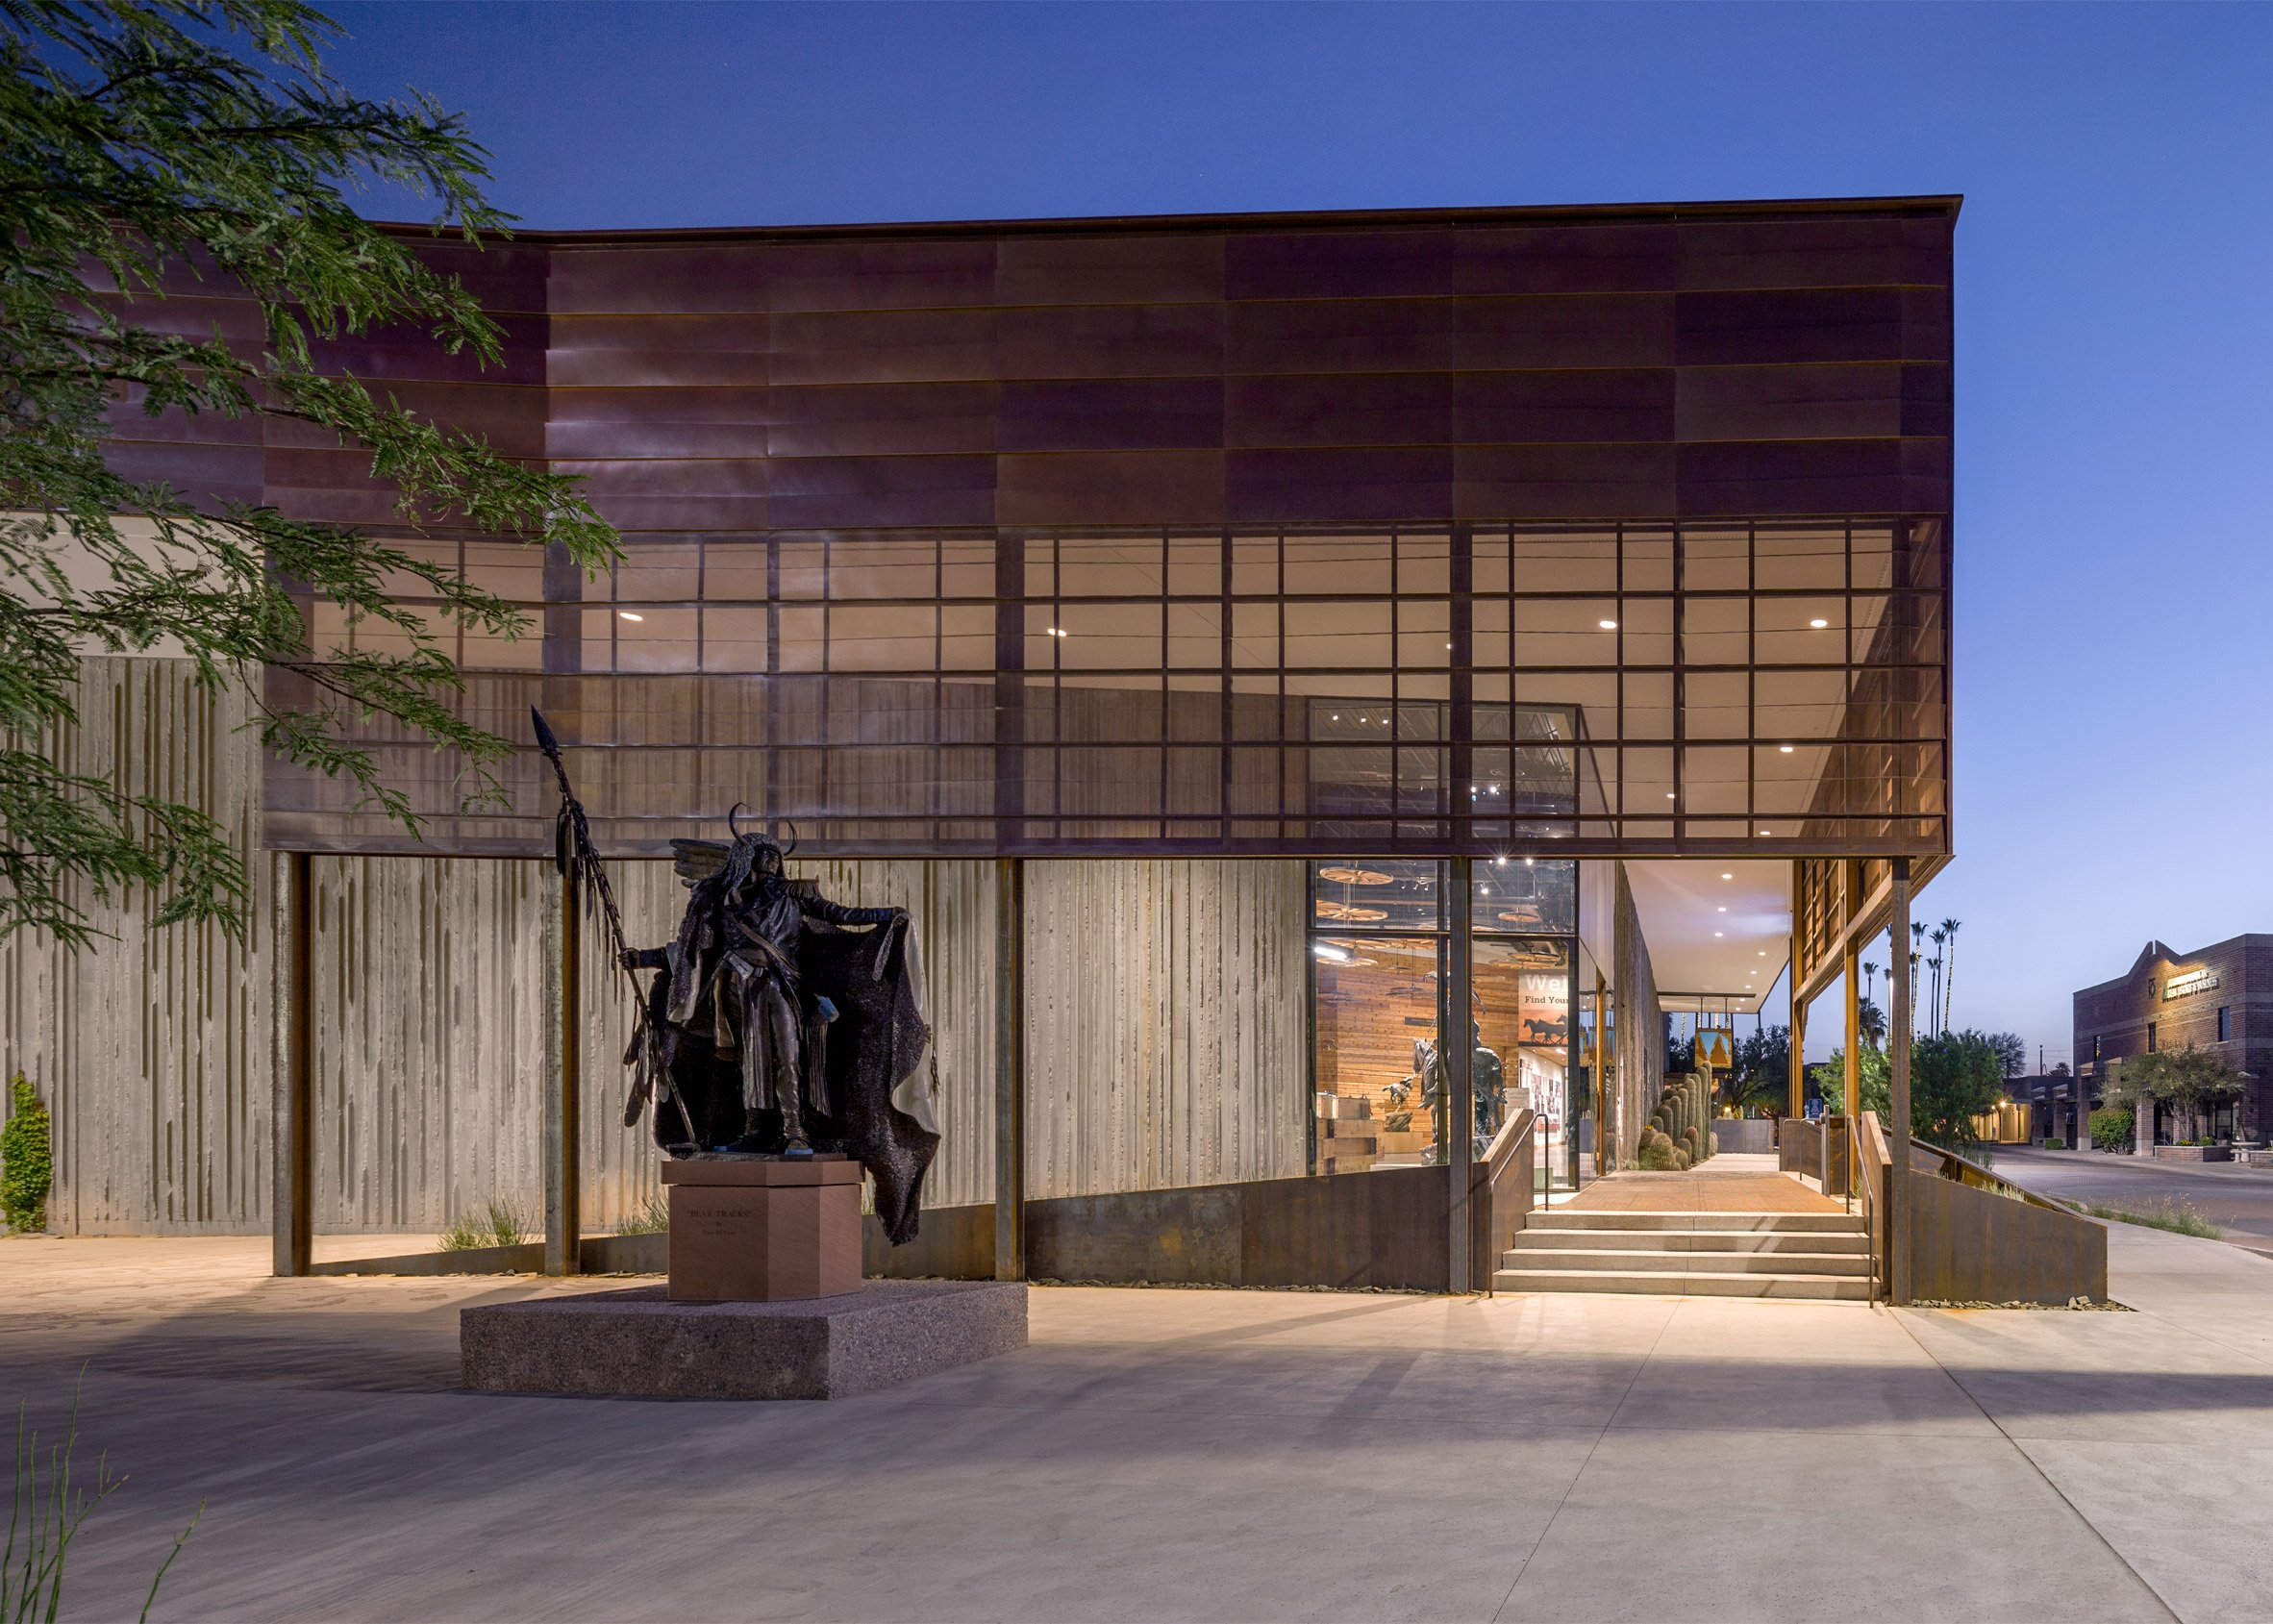 Studio Ma creates an Arizona museum with walls made of textured concrete